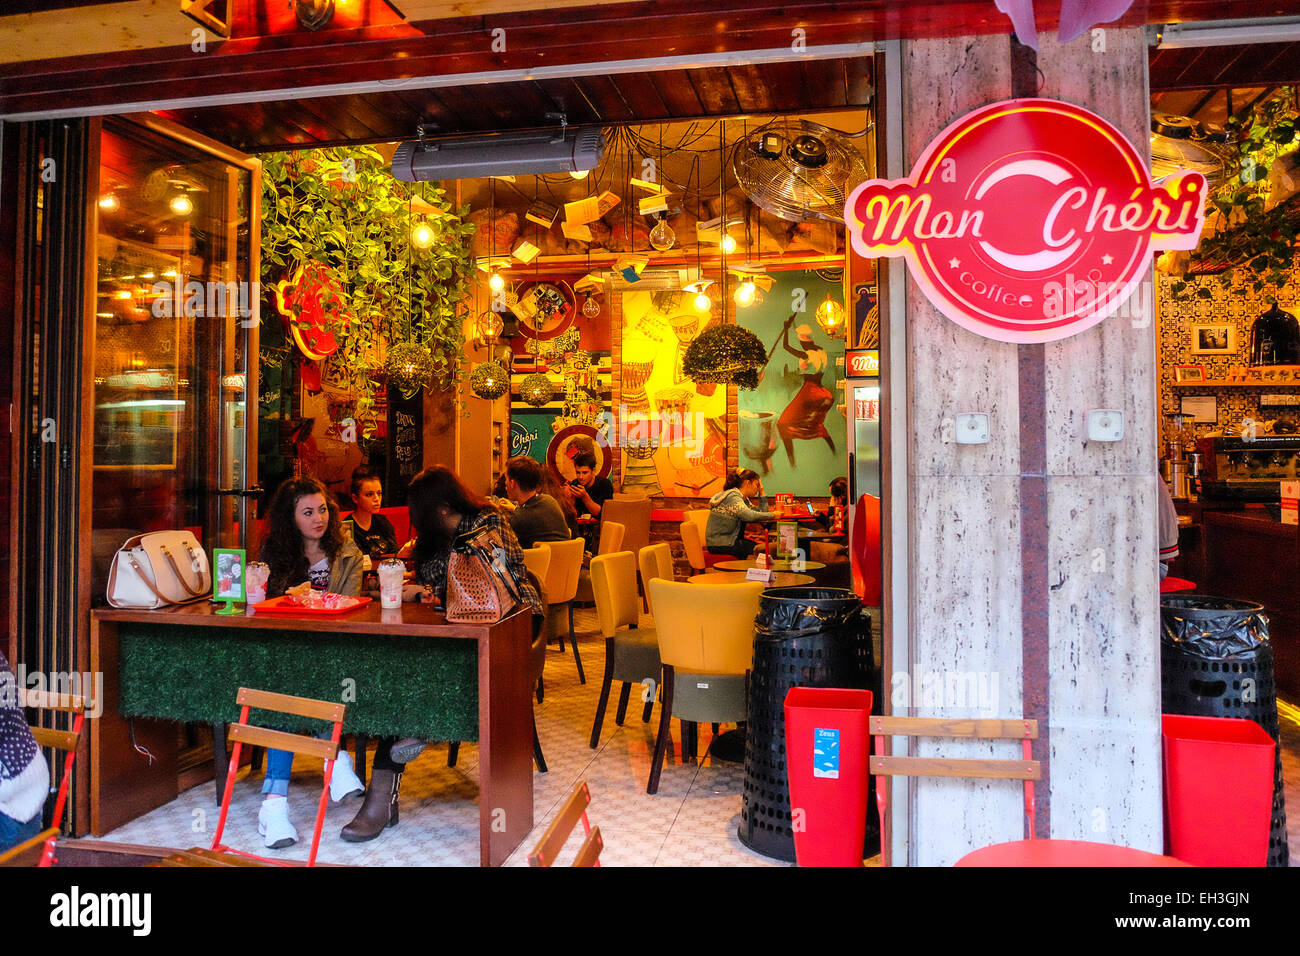 Albania, Tirana, local restaurant - Stock Image